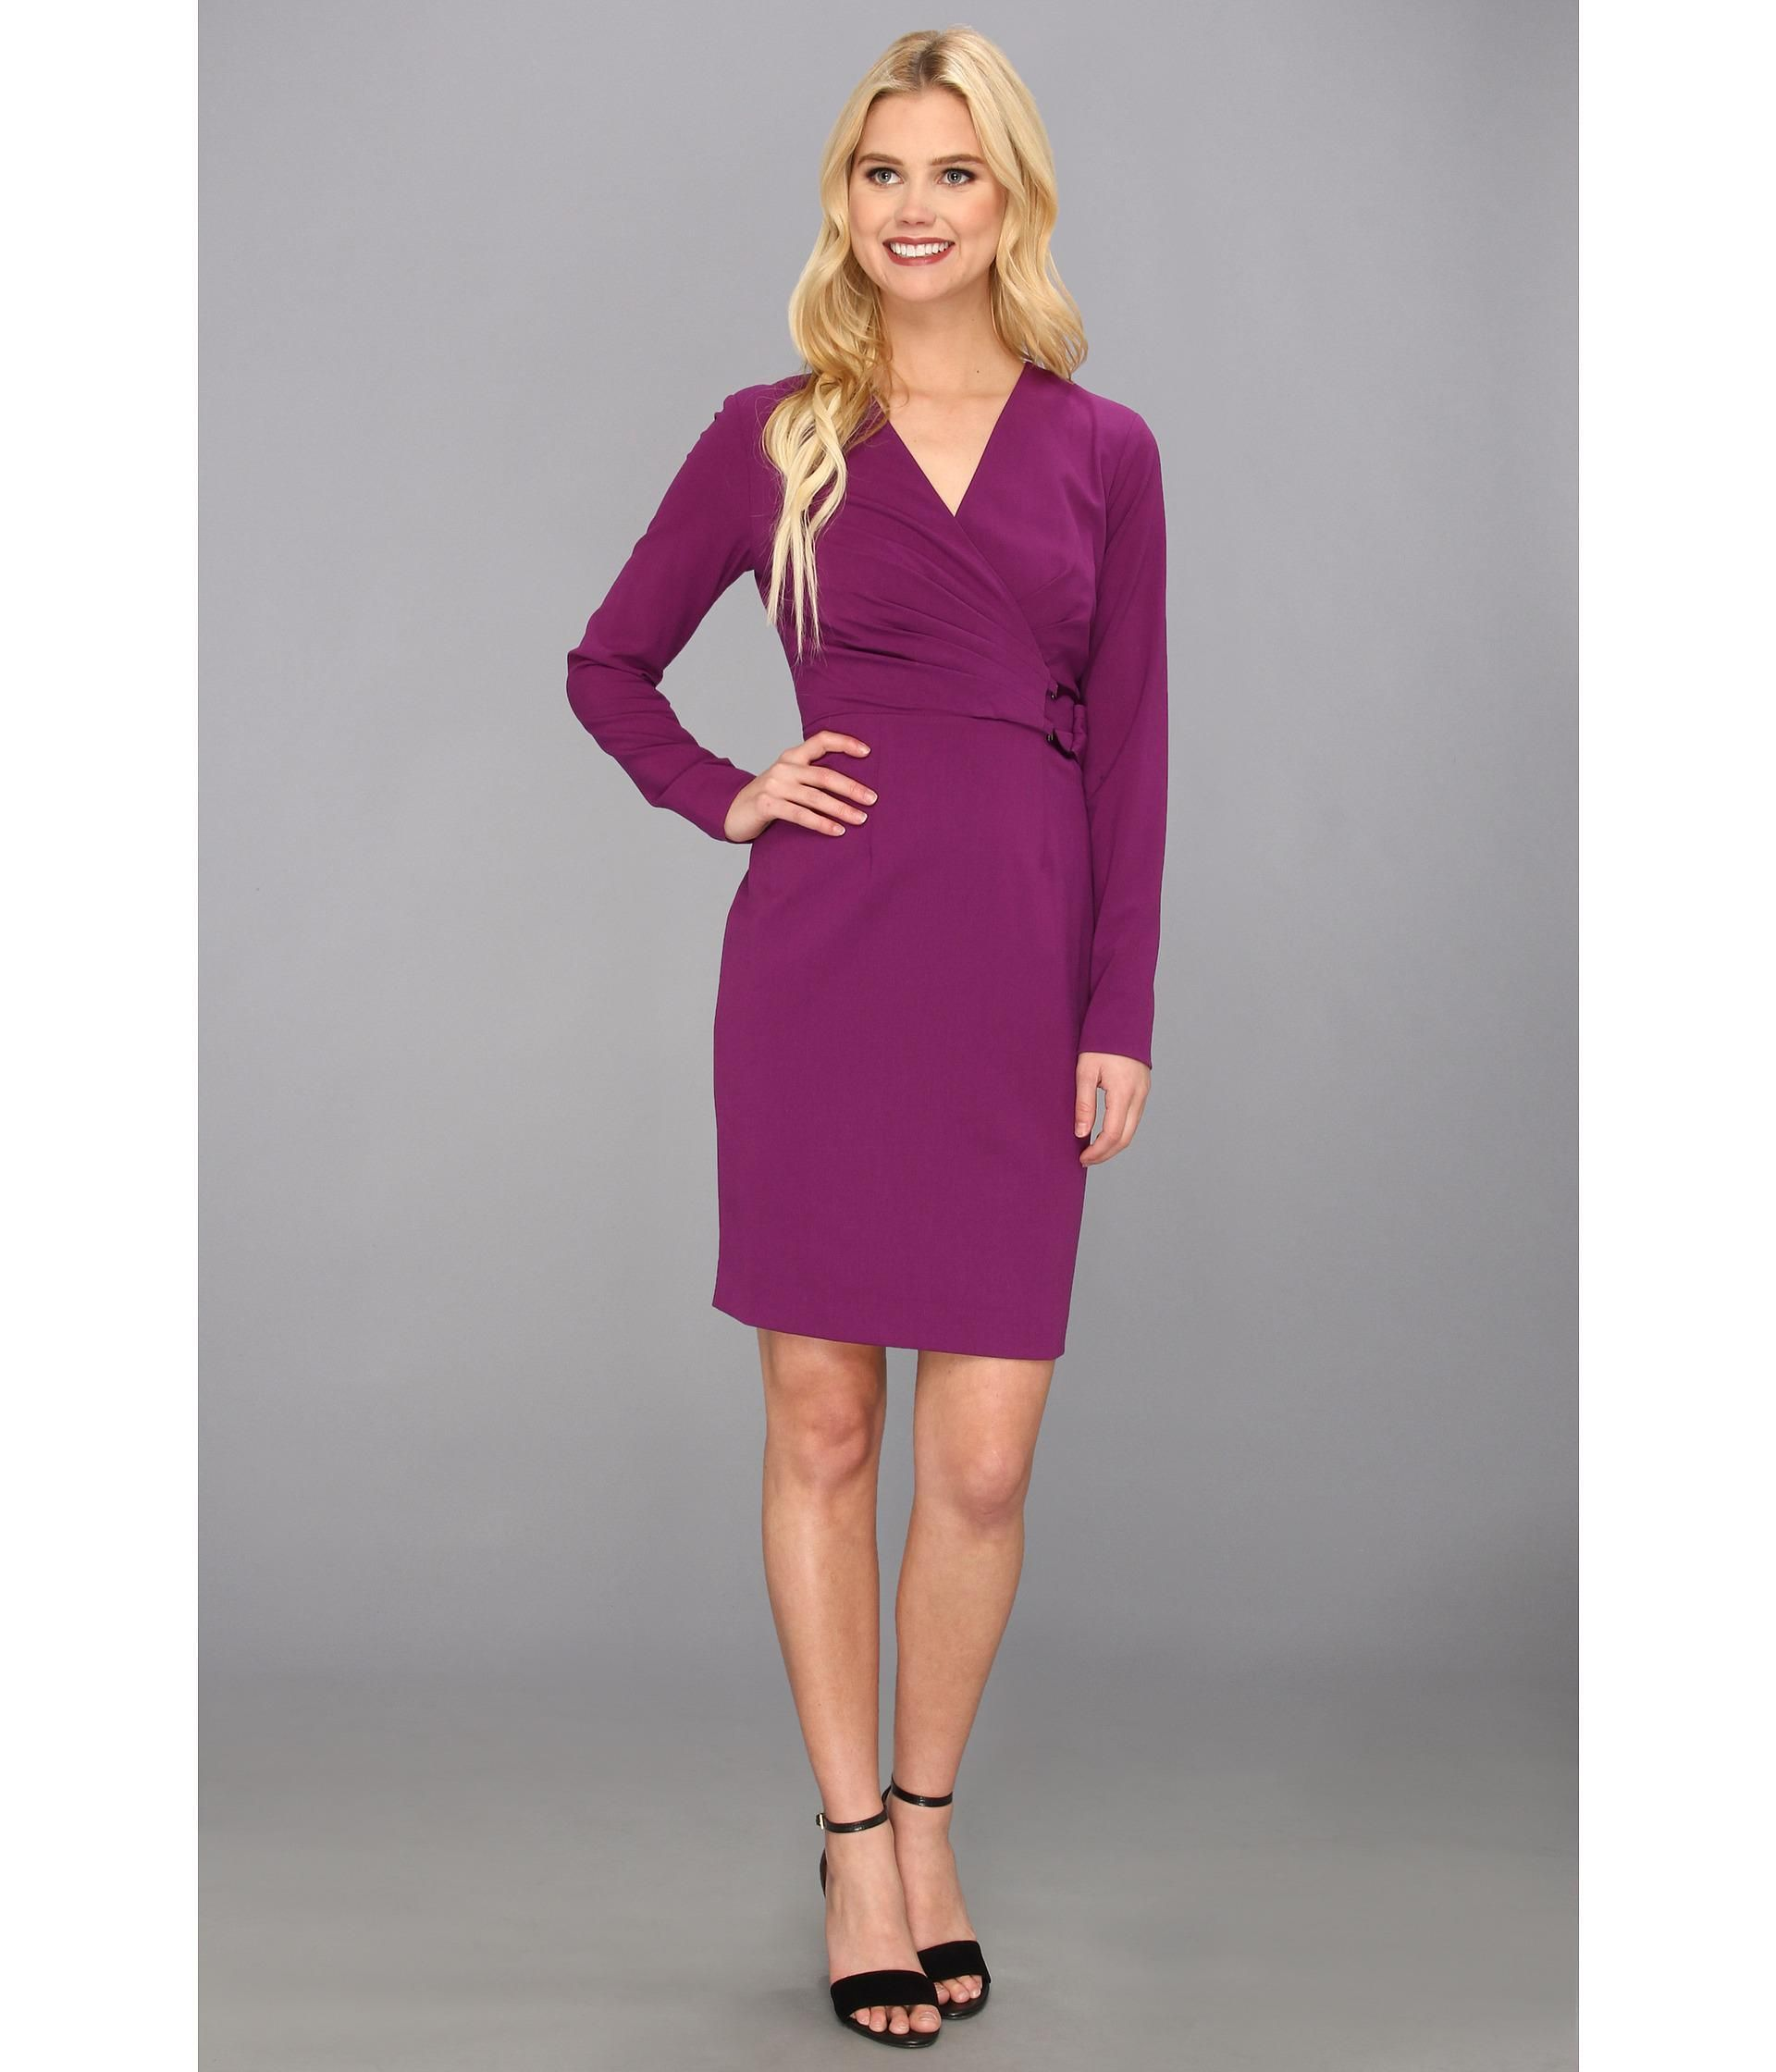 Classic shift dress features figureflattering pleating at surplice